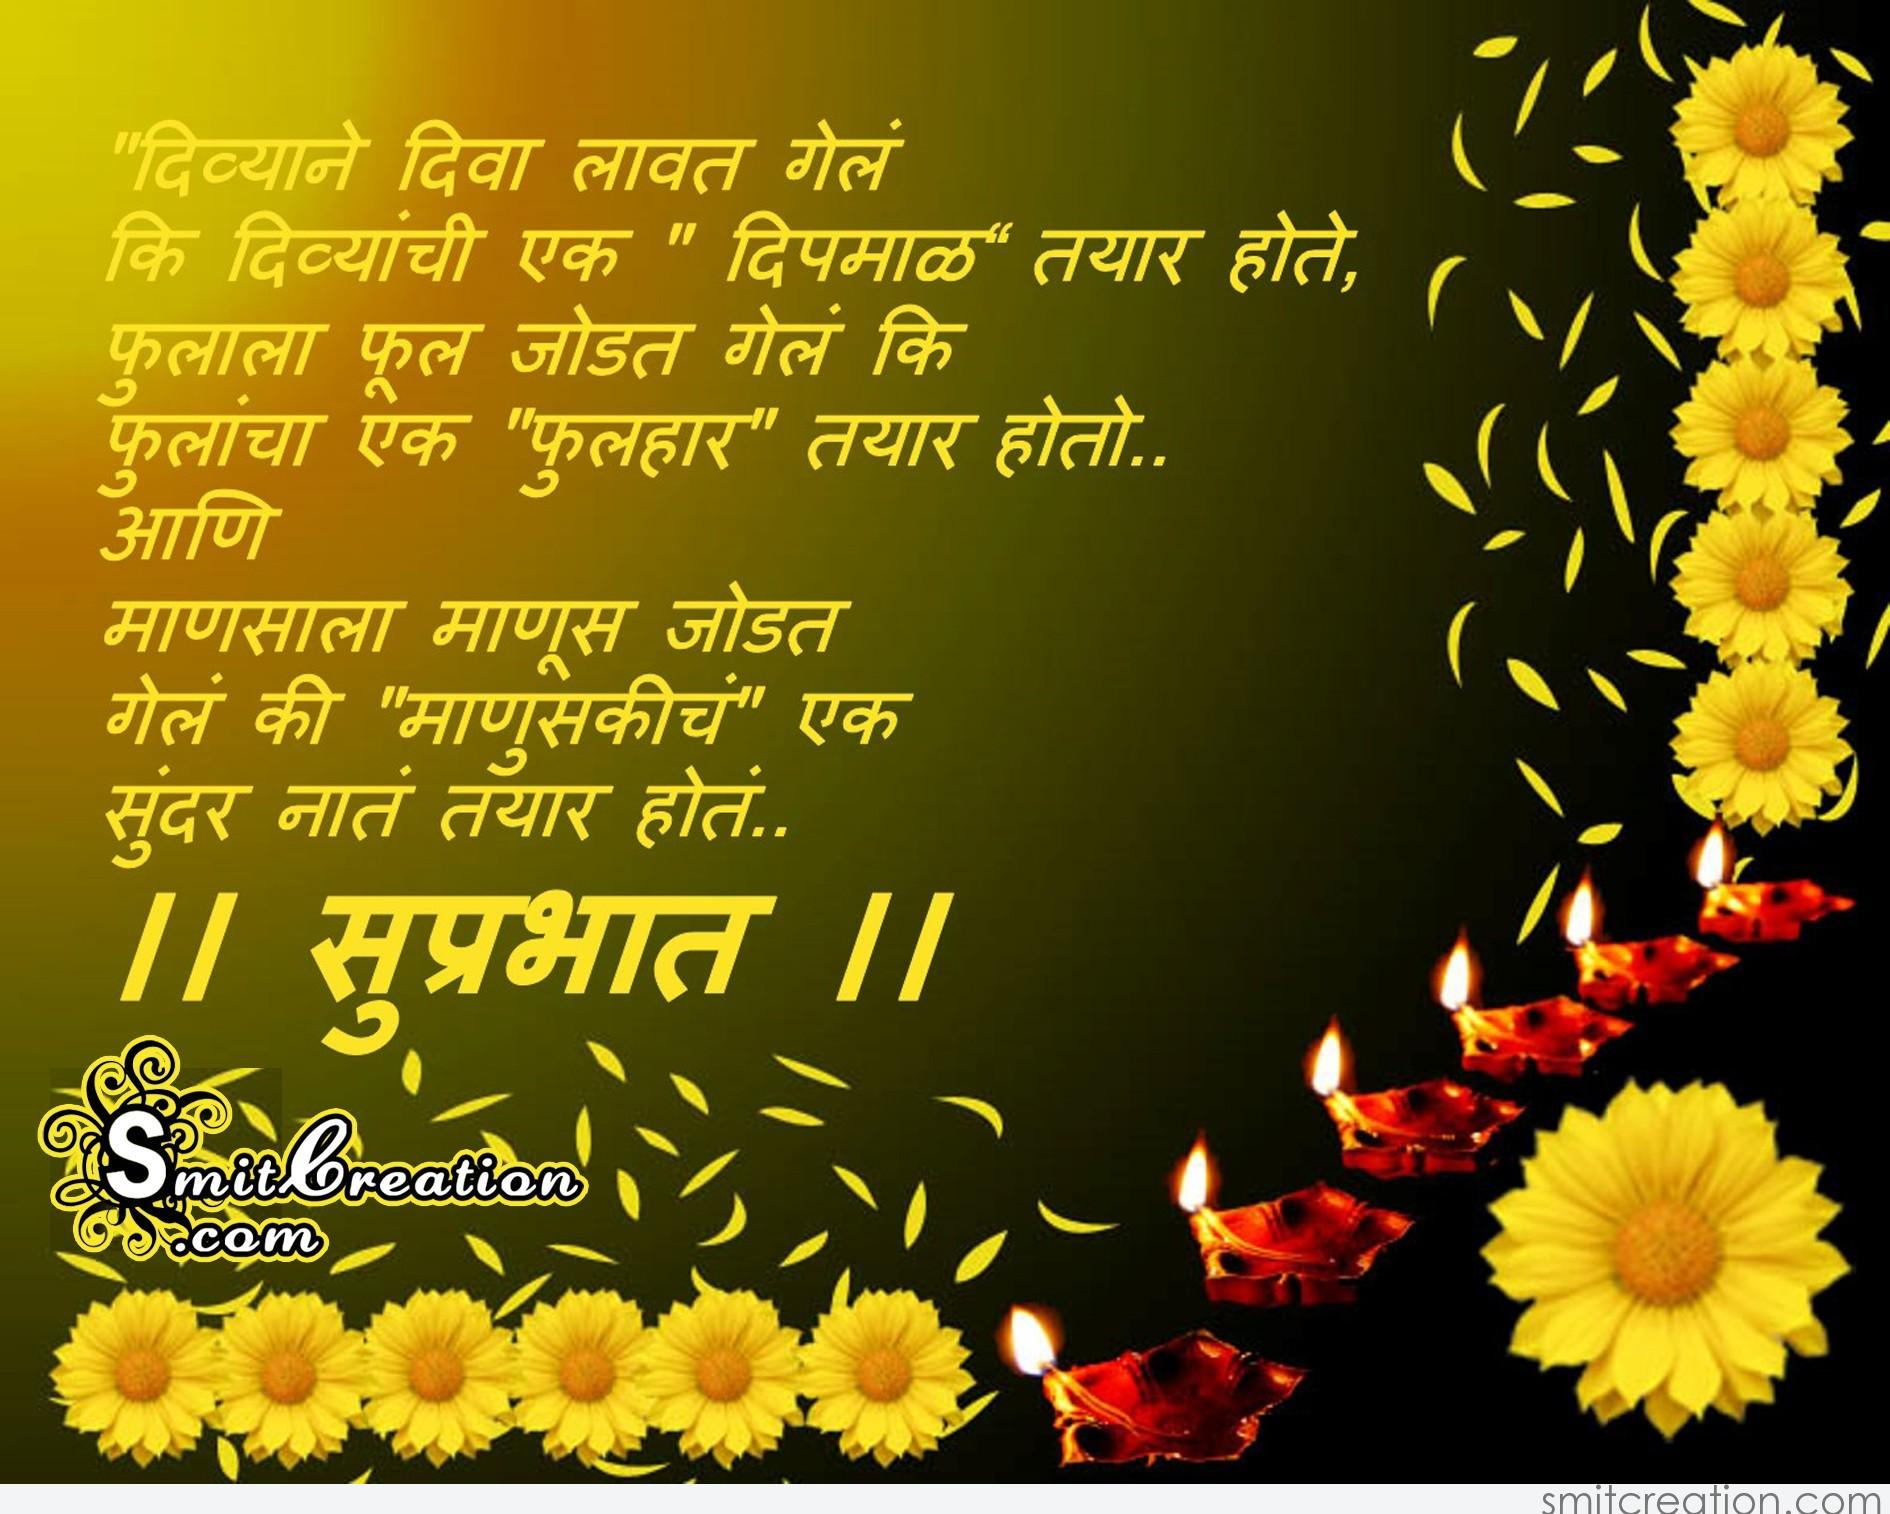 Navratri SMS in Hindi, Happy Navratri Wishes / Messages in